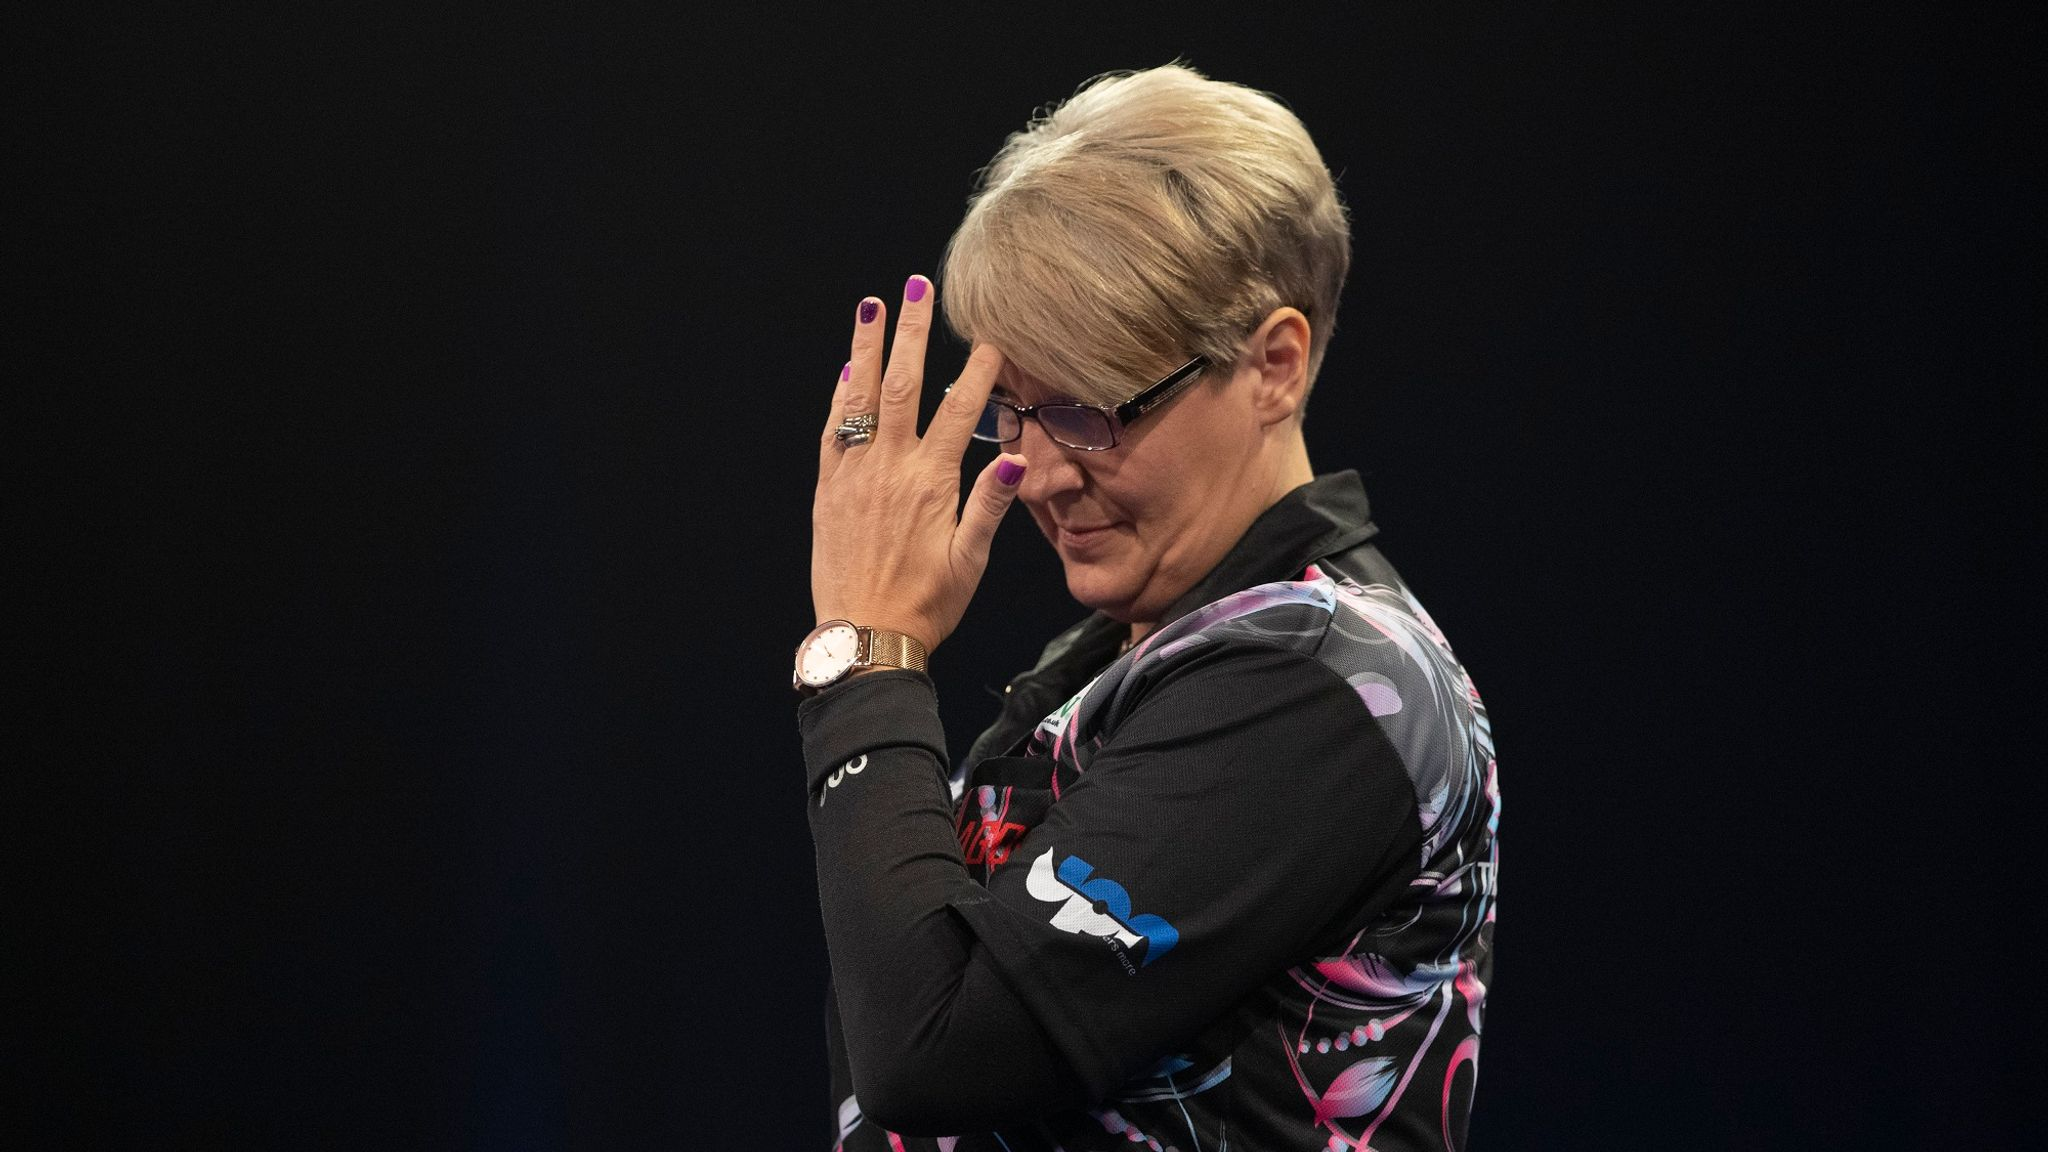 Lisa Ashton's exploits at Q School underlines the growth of the women's game, says Rod Studd